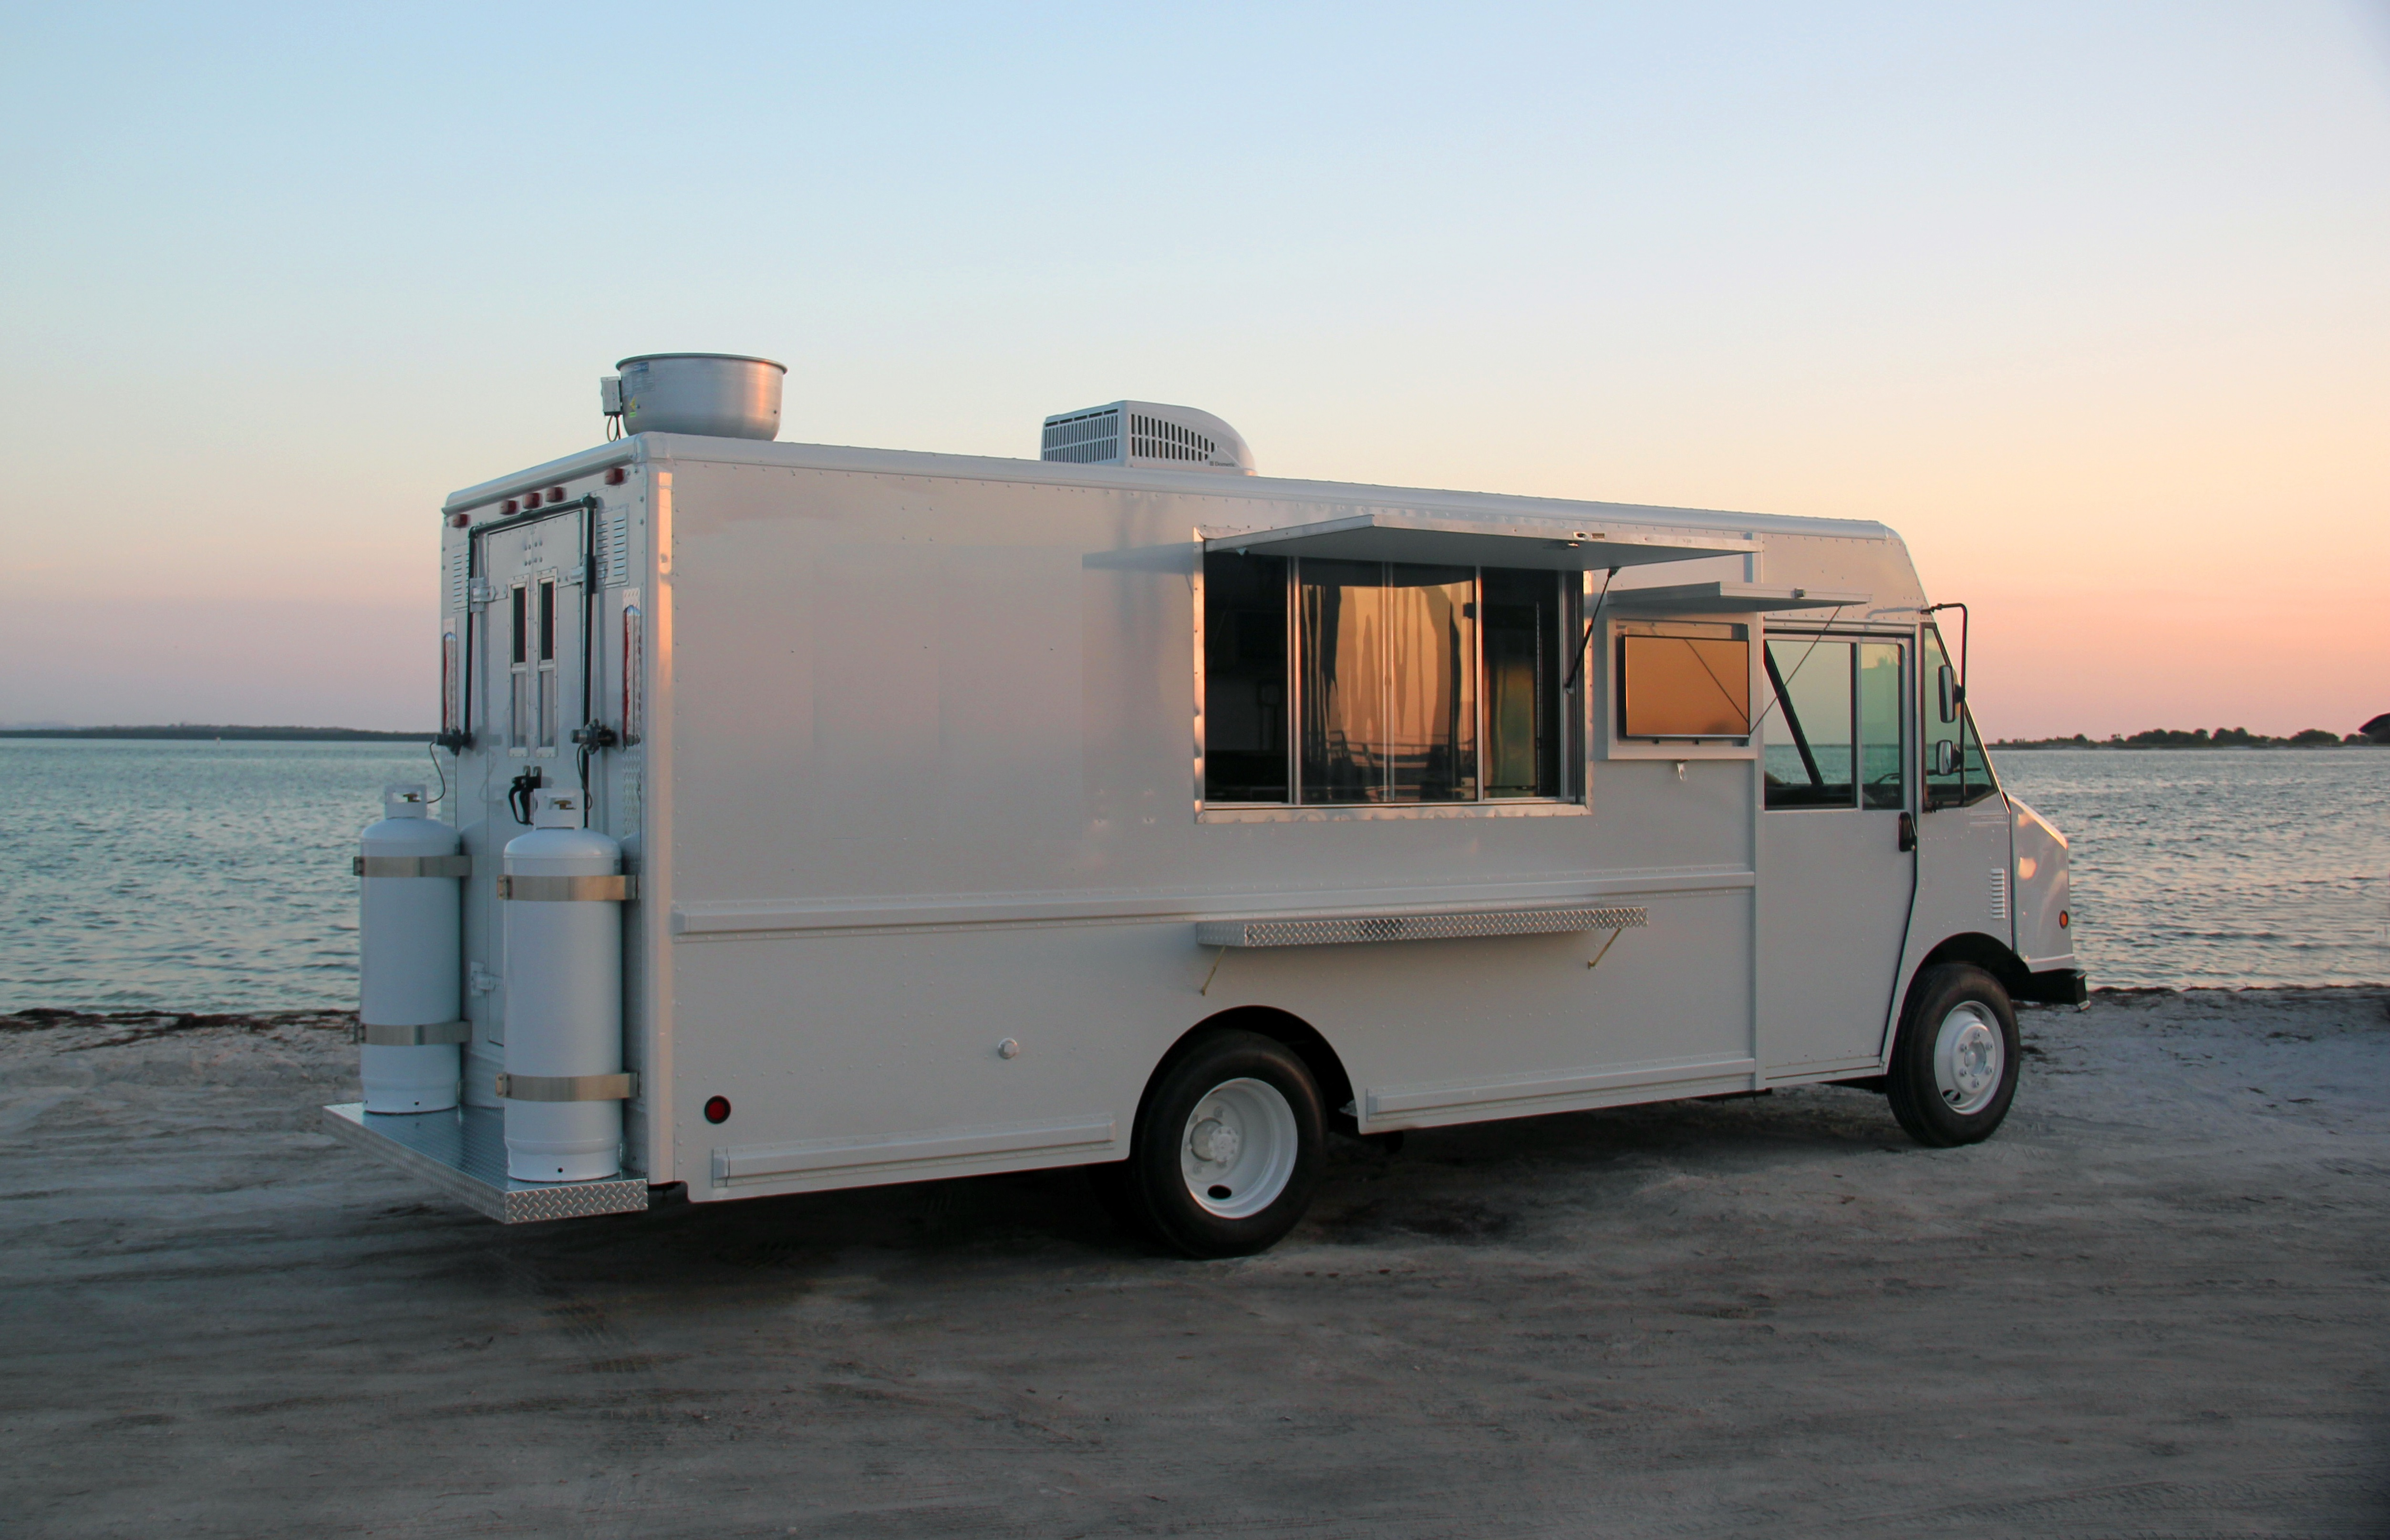 Permits And Licenses For Food Trucks